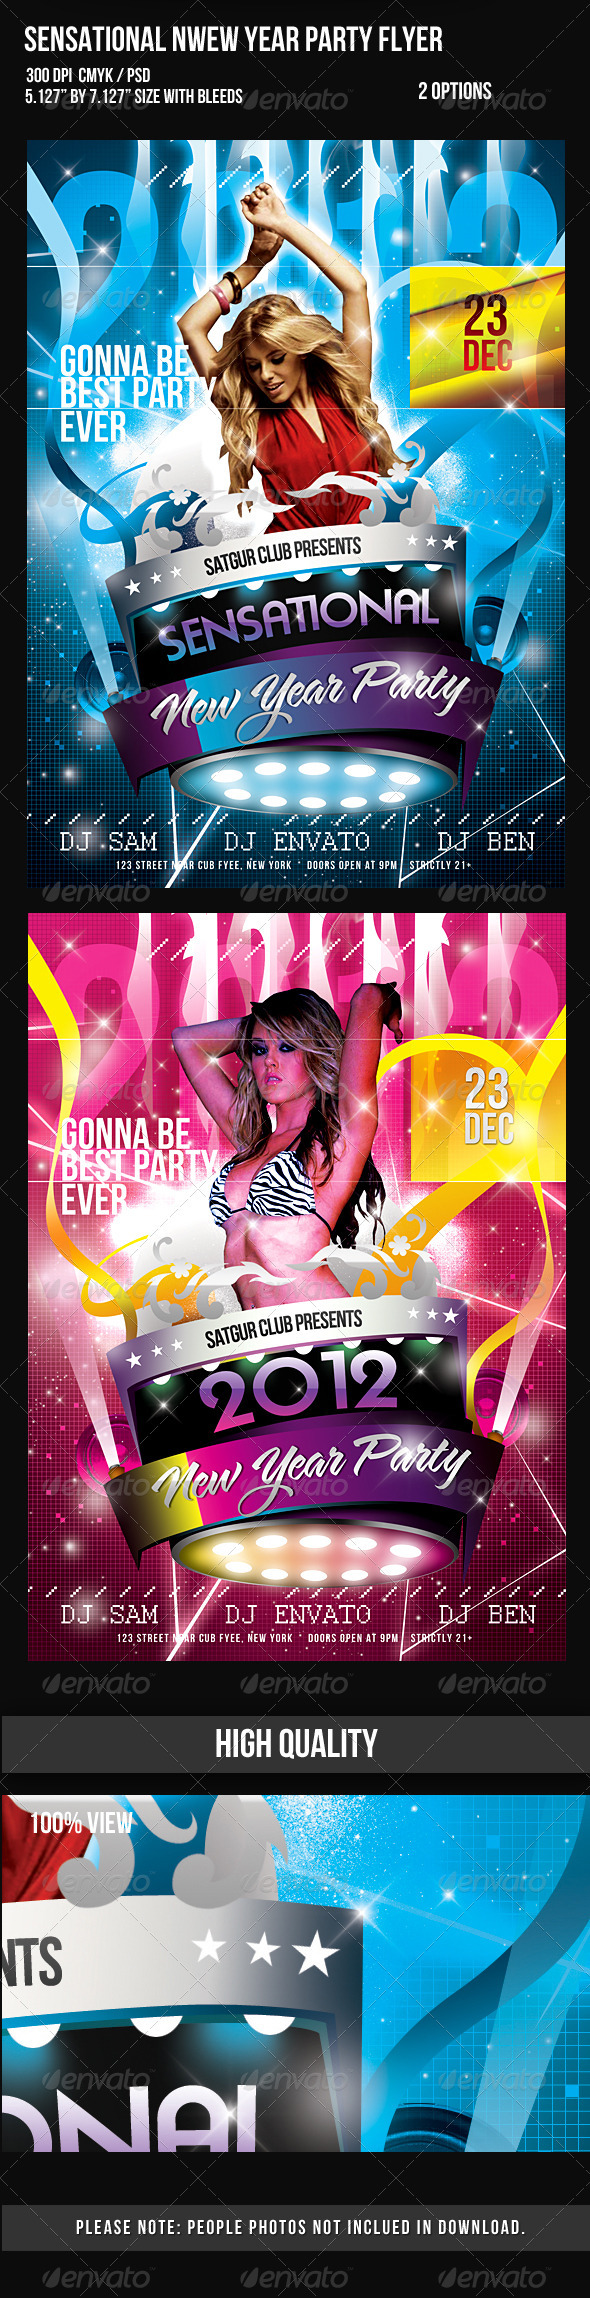 2012 Sensational New Year Dance Music Party Night - Clubs & Parties Events